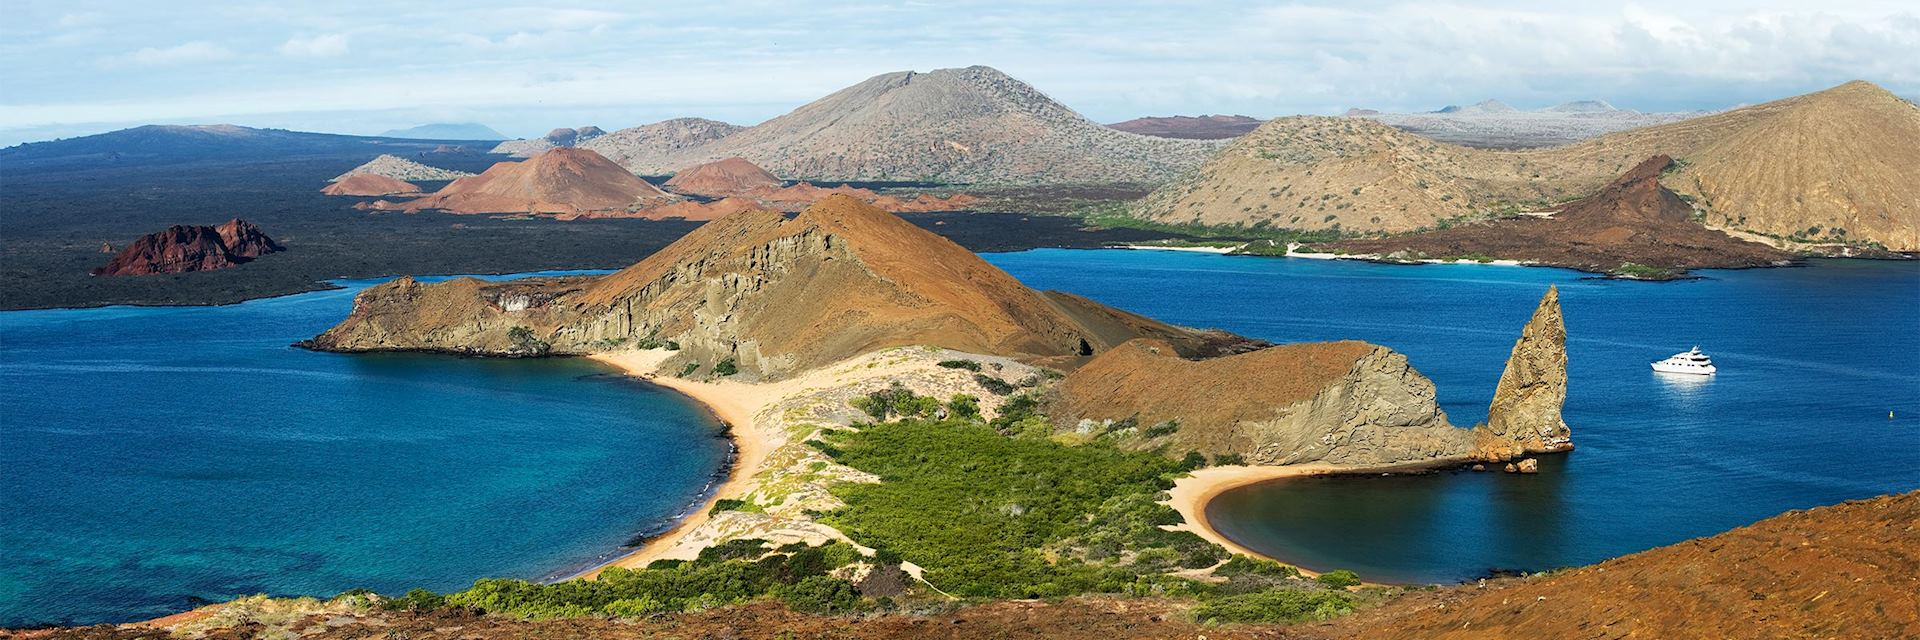 Bartolomé Island in the Galapagos Islands